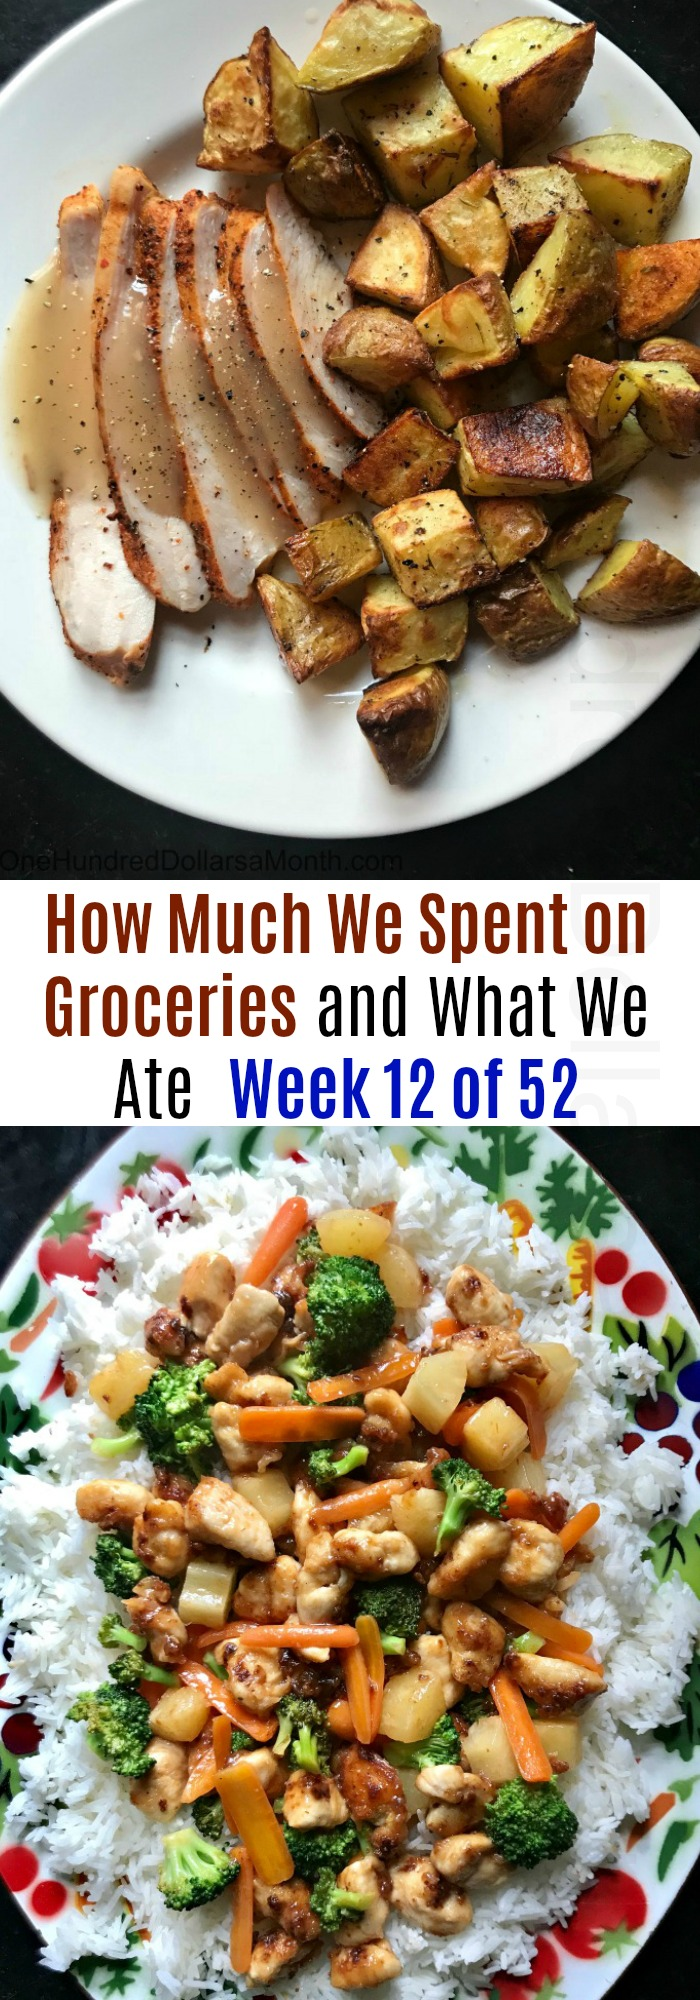 How Much We Spent on Groceries and What We Ate – Week 12 of 52